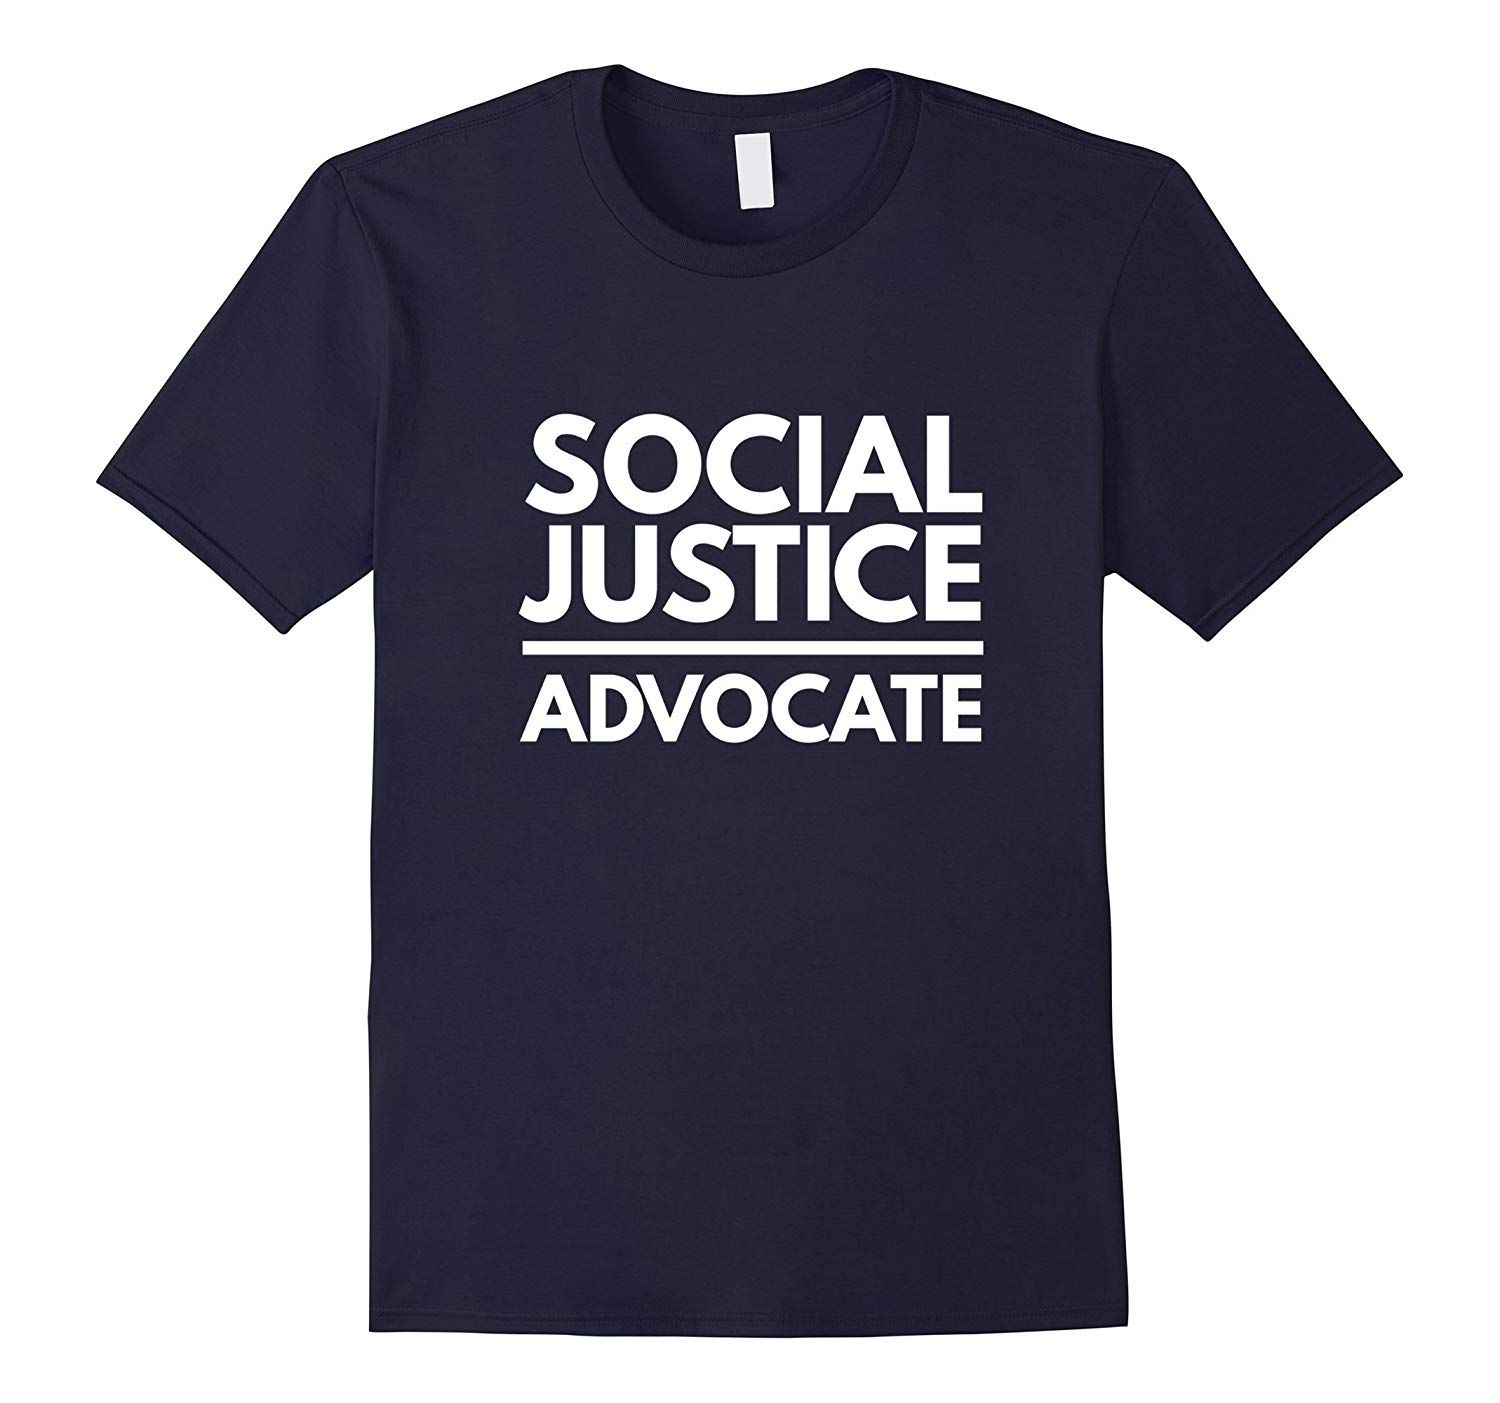 Social Justice Advocate Human Rights Awareness Gift T Shirt Social Justice Shirts Social Justice Gifts Social Justice